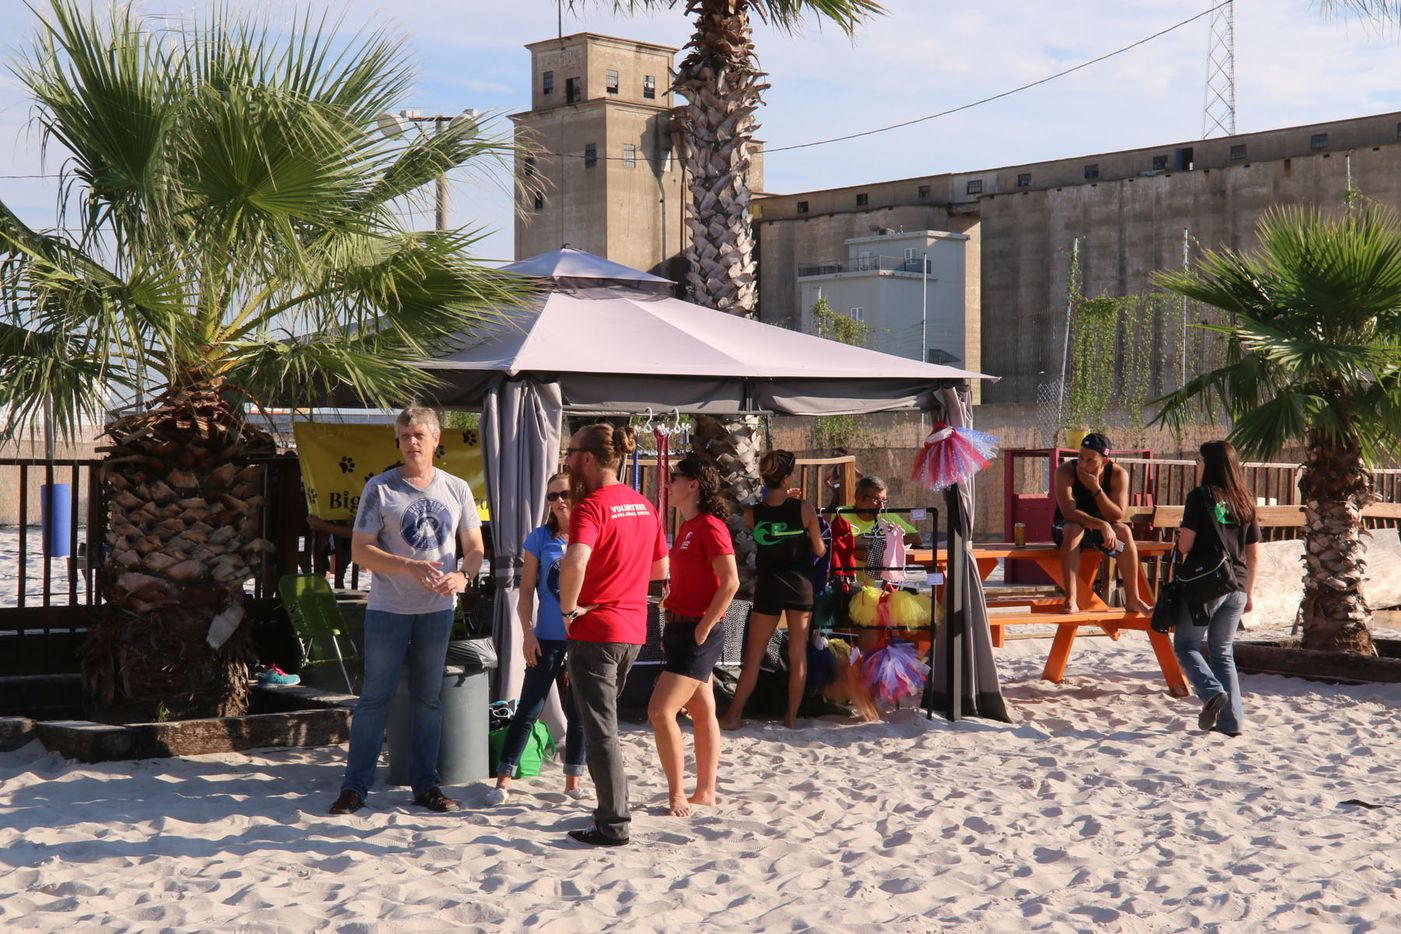 Models 4 Mutts Sand Volleyball tournament for Operation Kindness, which was held at Sandbar Cantina and Grill on September 19, 2015